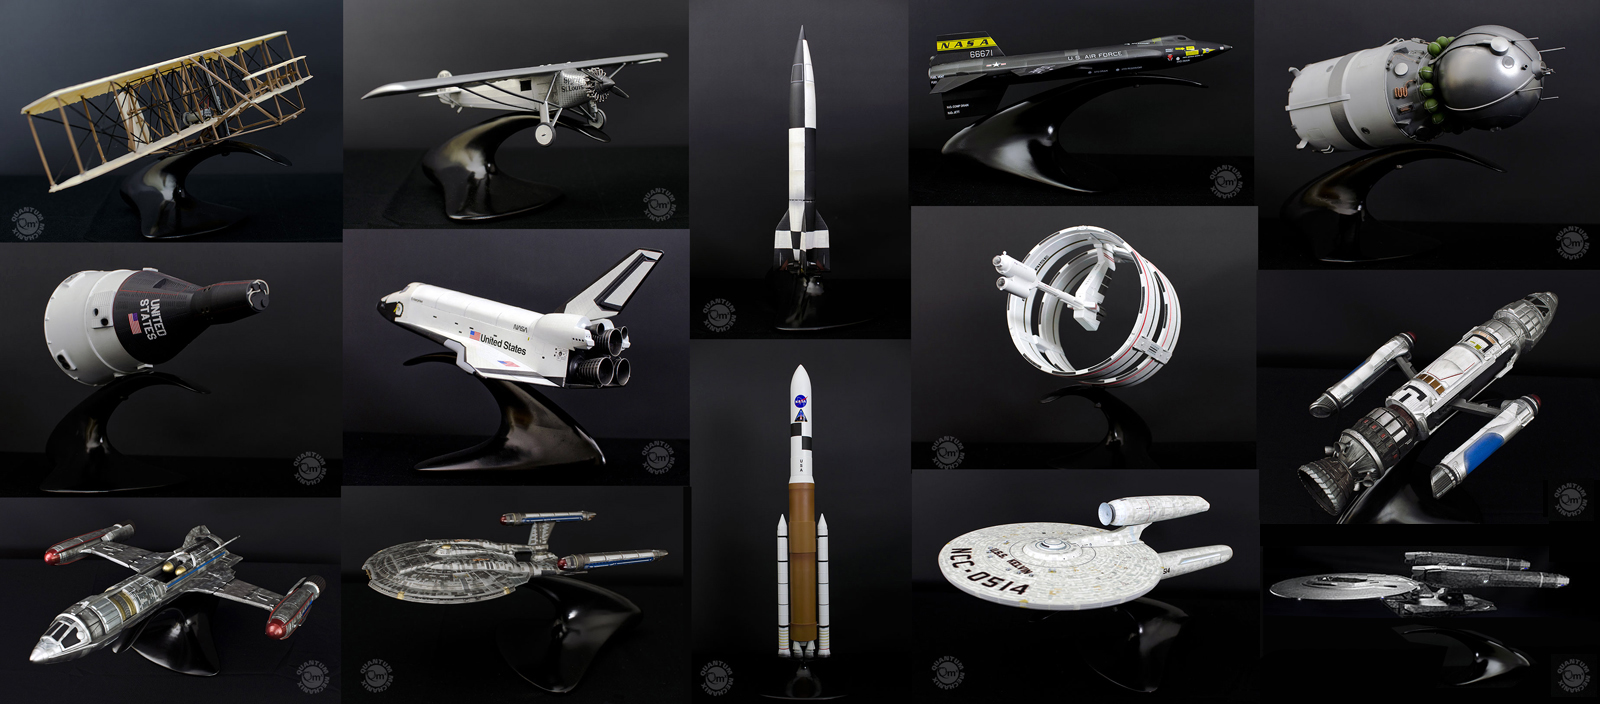 Ares v memory alpha fandom powered by wikia qmx star trek into darkness starship props publicscrutiny Gallery